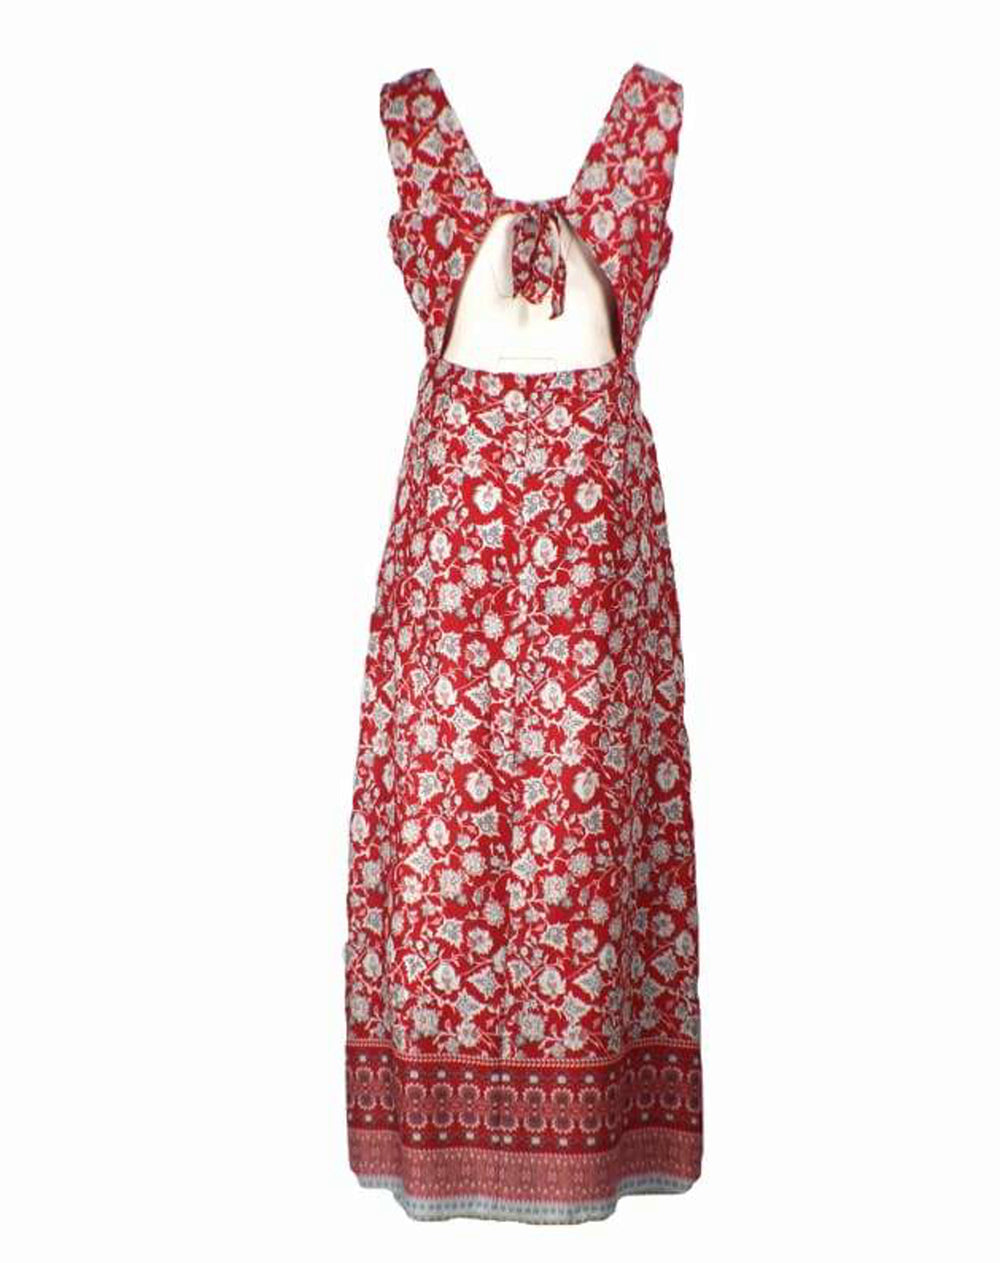 Back View Border Print Tie Back Maxi Dress - Red Colour playsuit maxi dress sleeveless dress